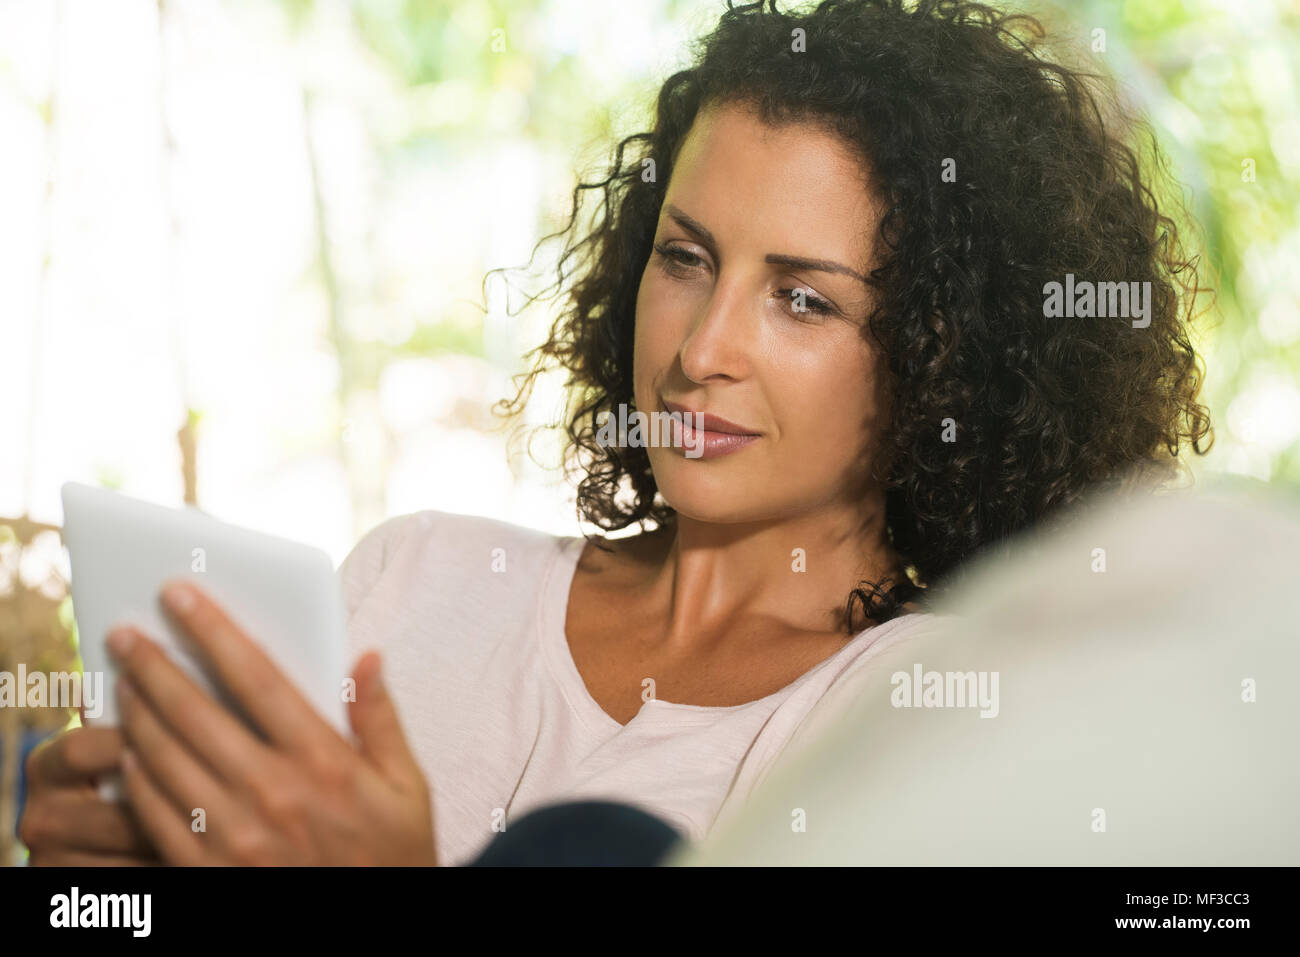 Portrait of woman holding e-reader Photo Stock